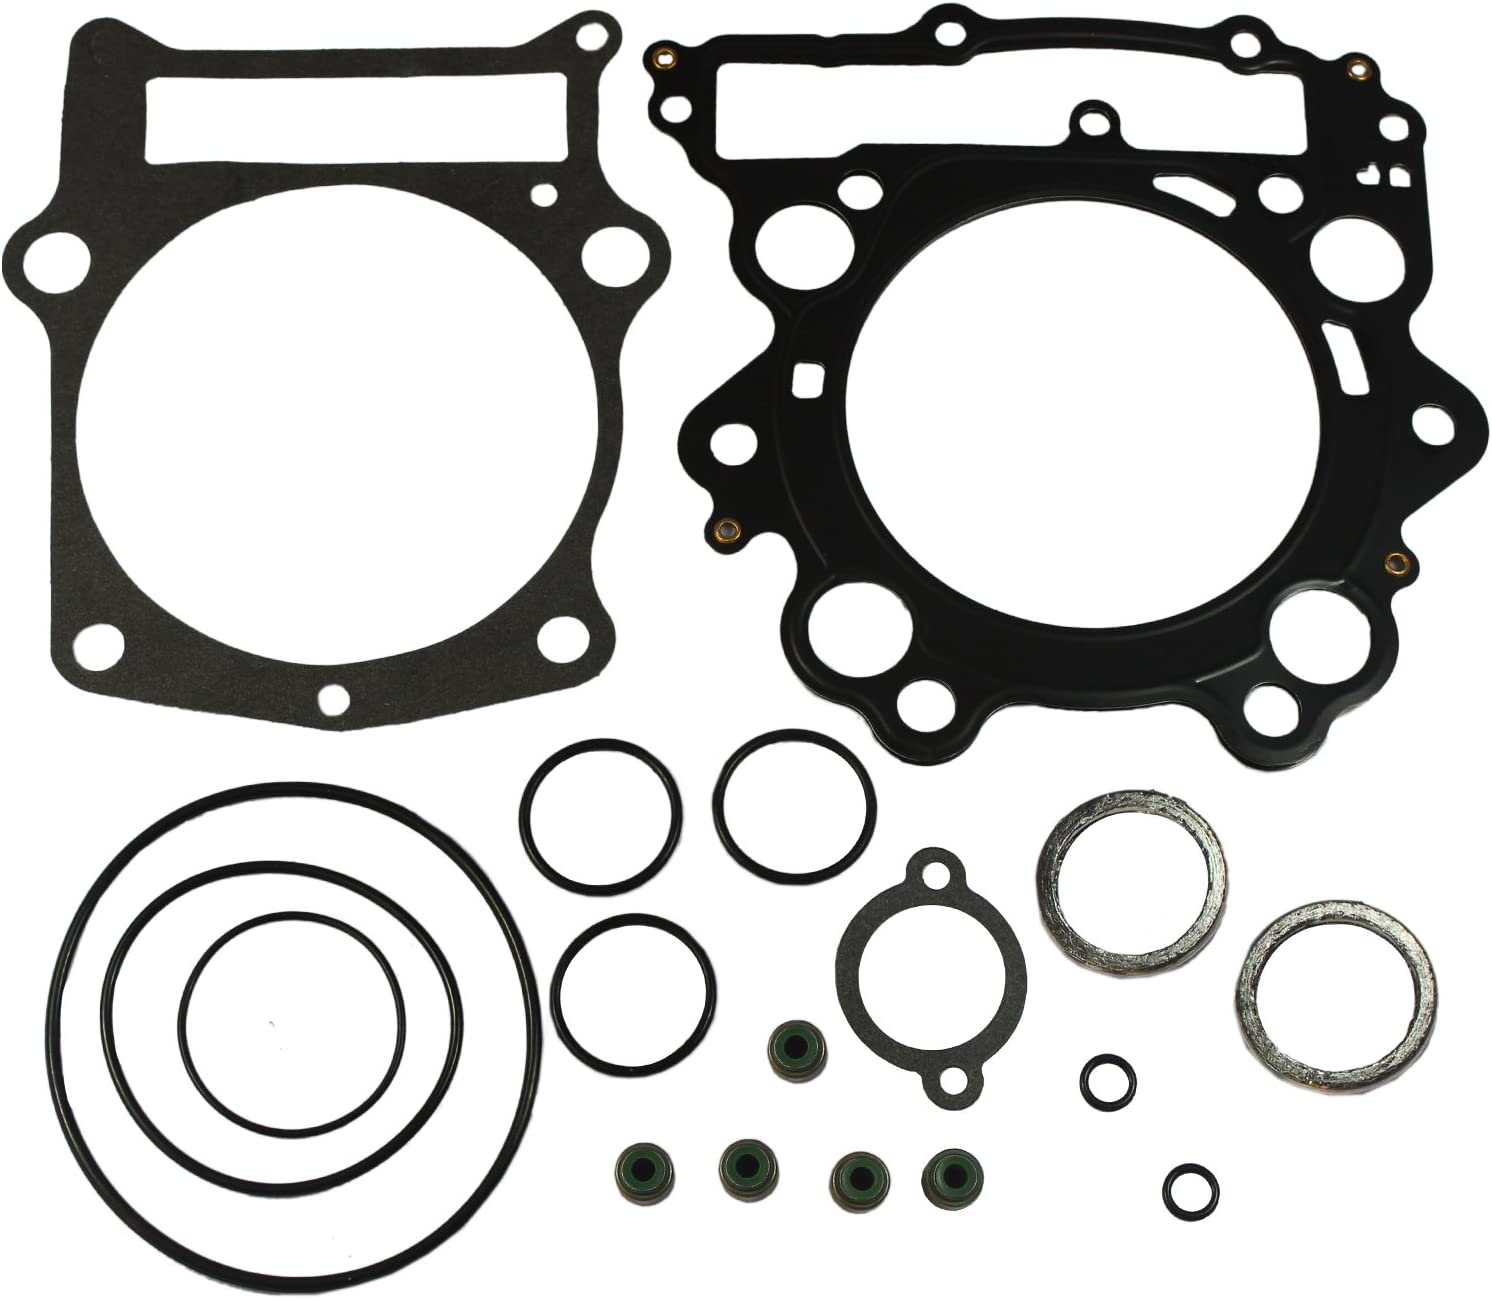 JDMSPEED New Top End Head Gasket Kit for Yamaha Rhino 660 04-07 & Grizzly 660 2002-2008